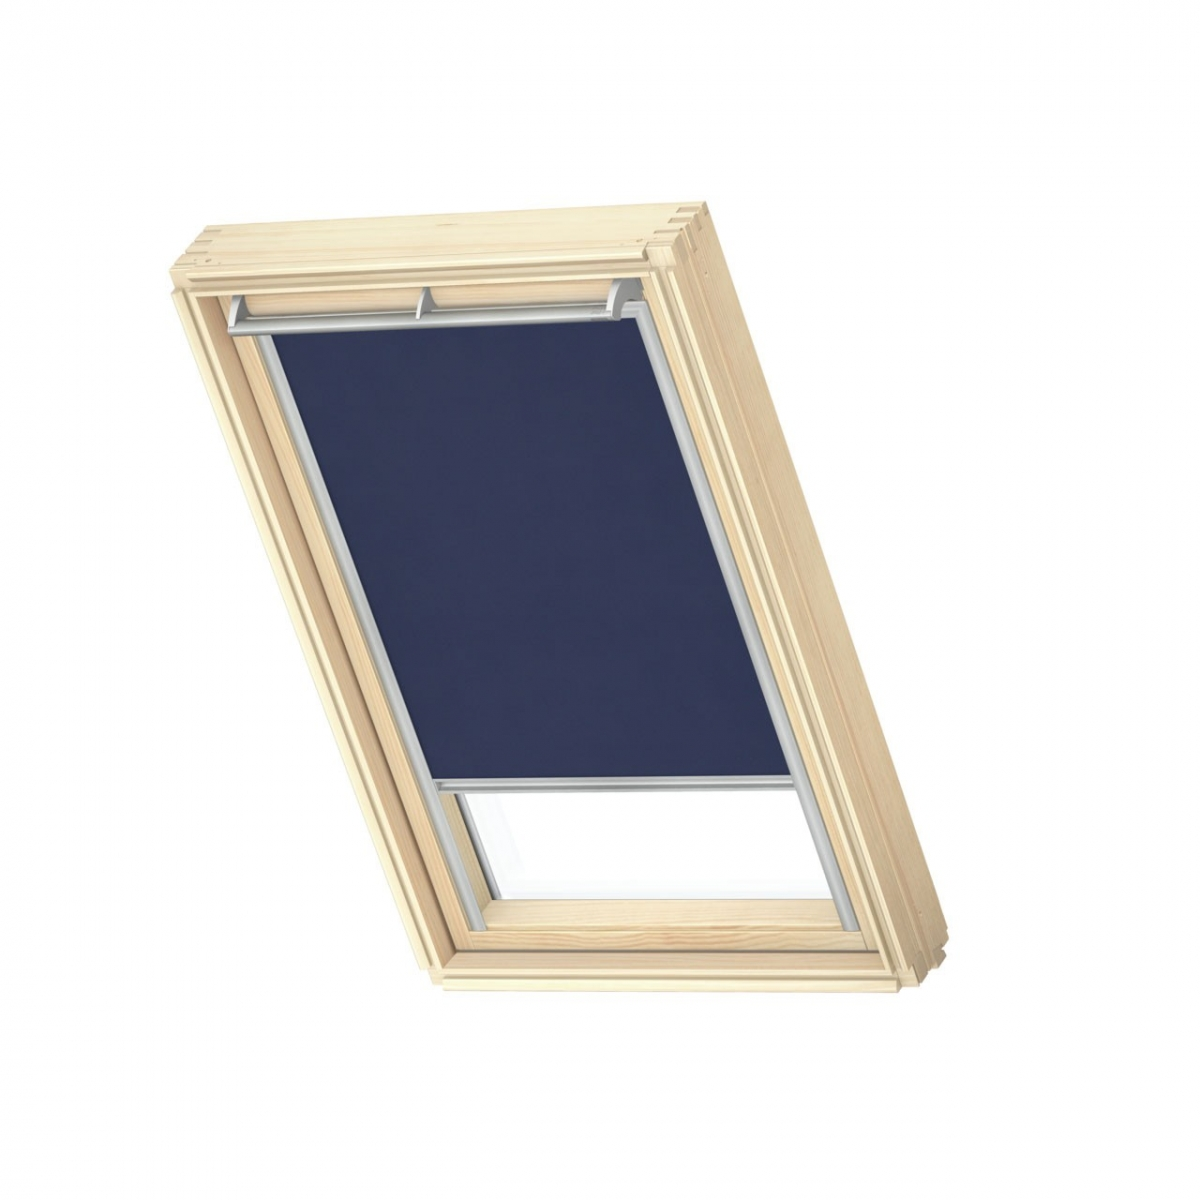 velux rollo dachfenster preis ab uac with velux rollo. Black Bedroom Furniture Sets. Home Design Ideas